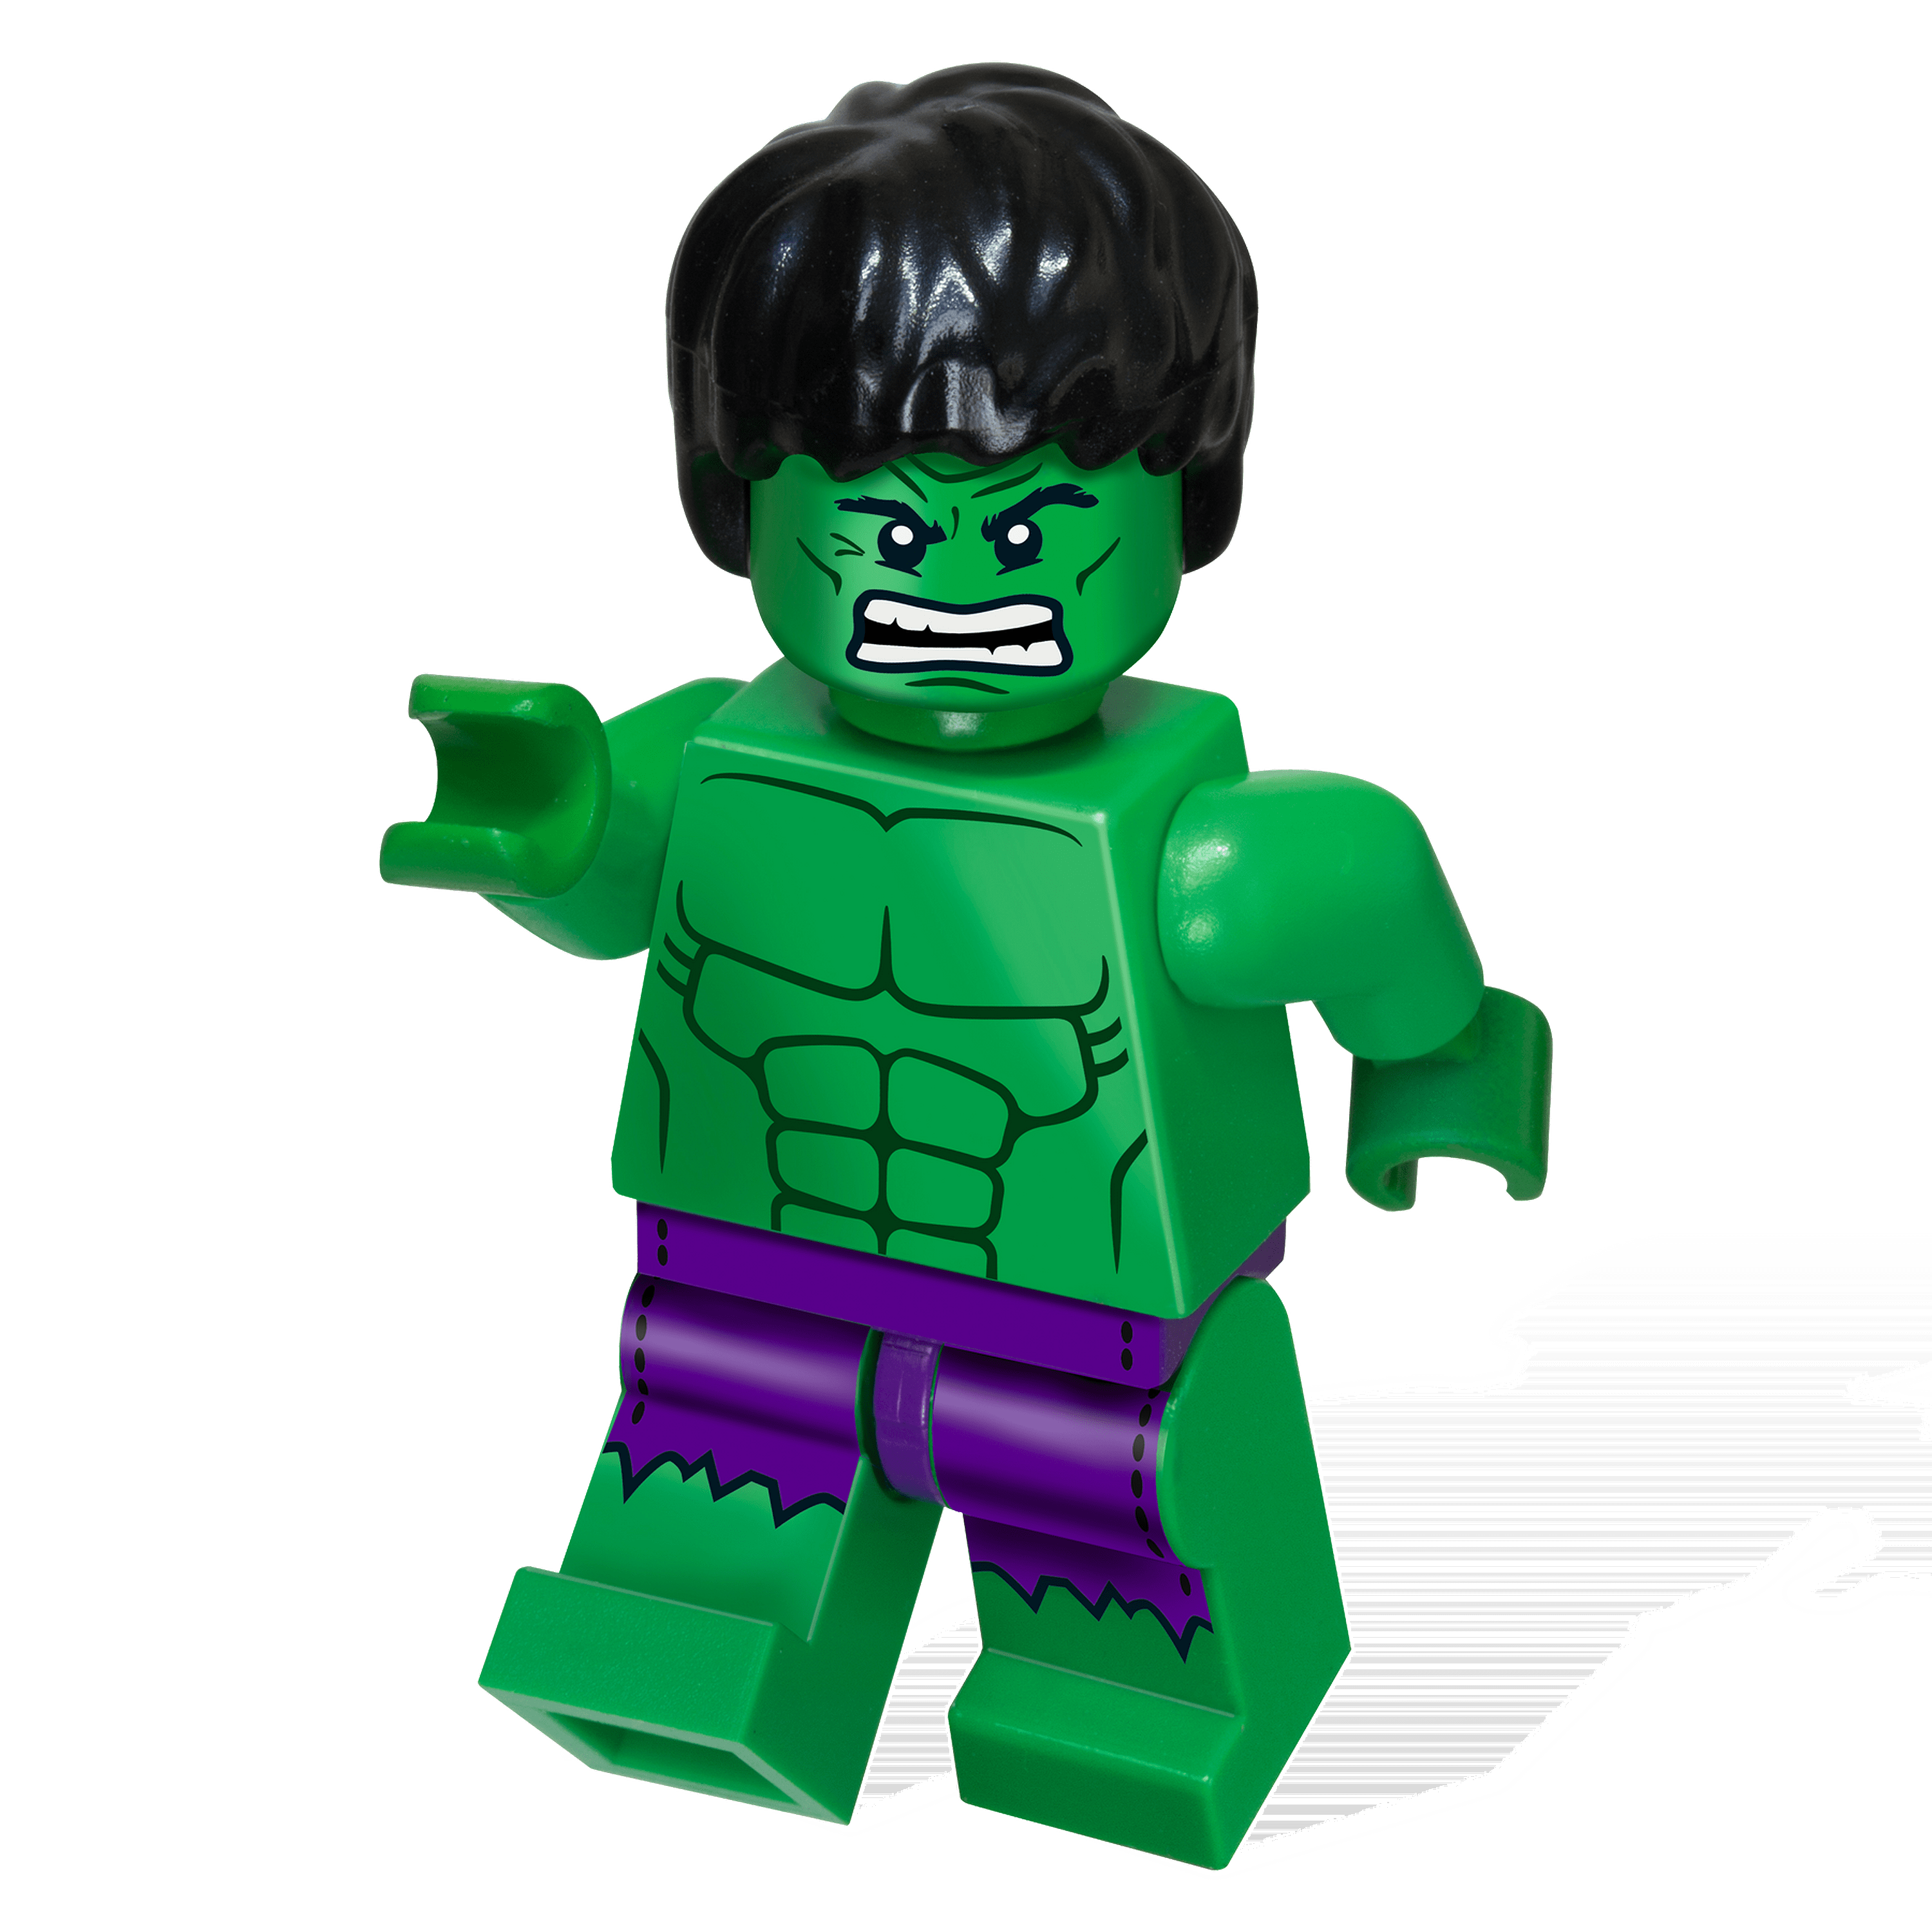 3000x3000 Wolverine Lego Marvel Heroes Clipart No Background